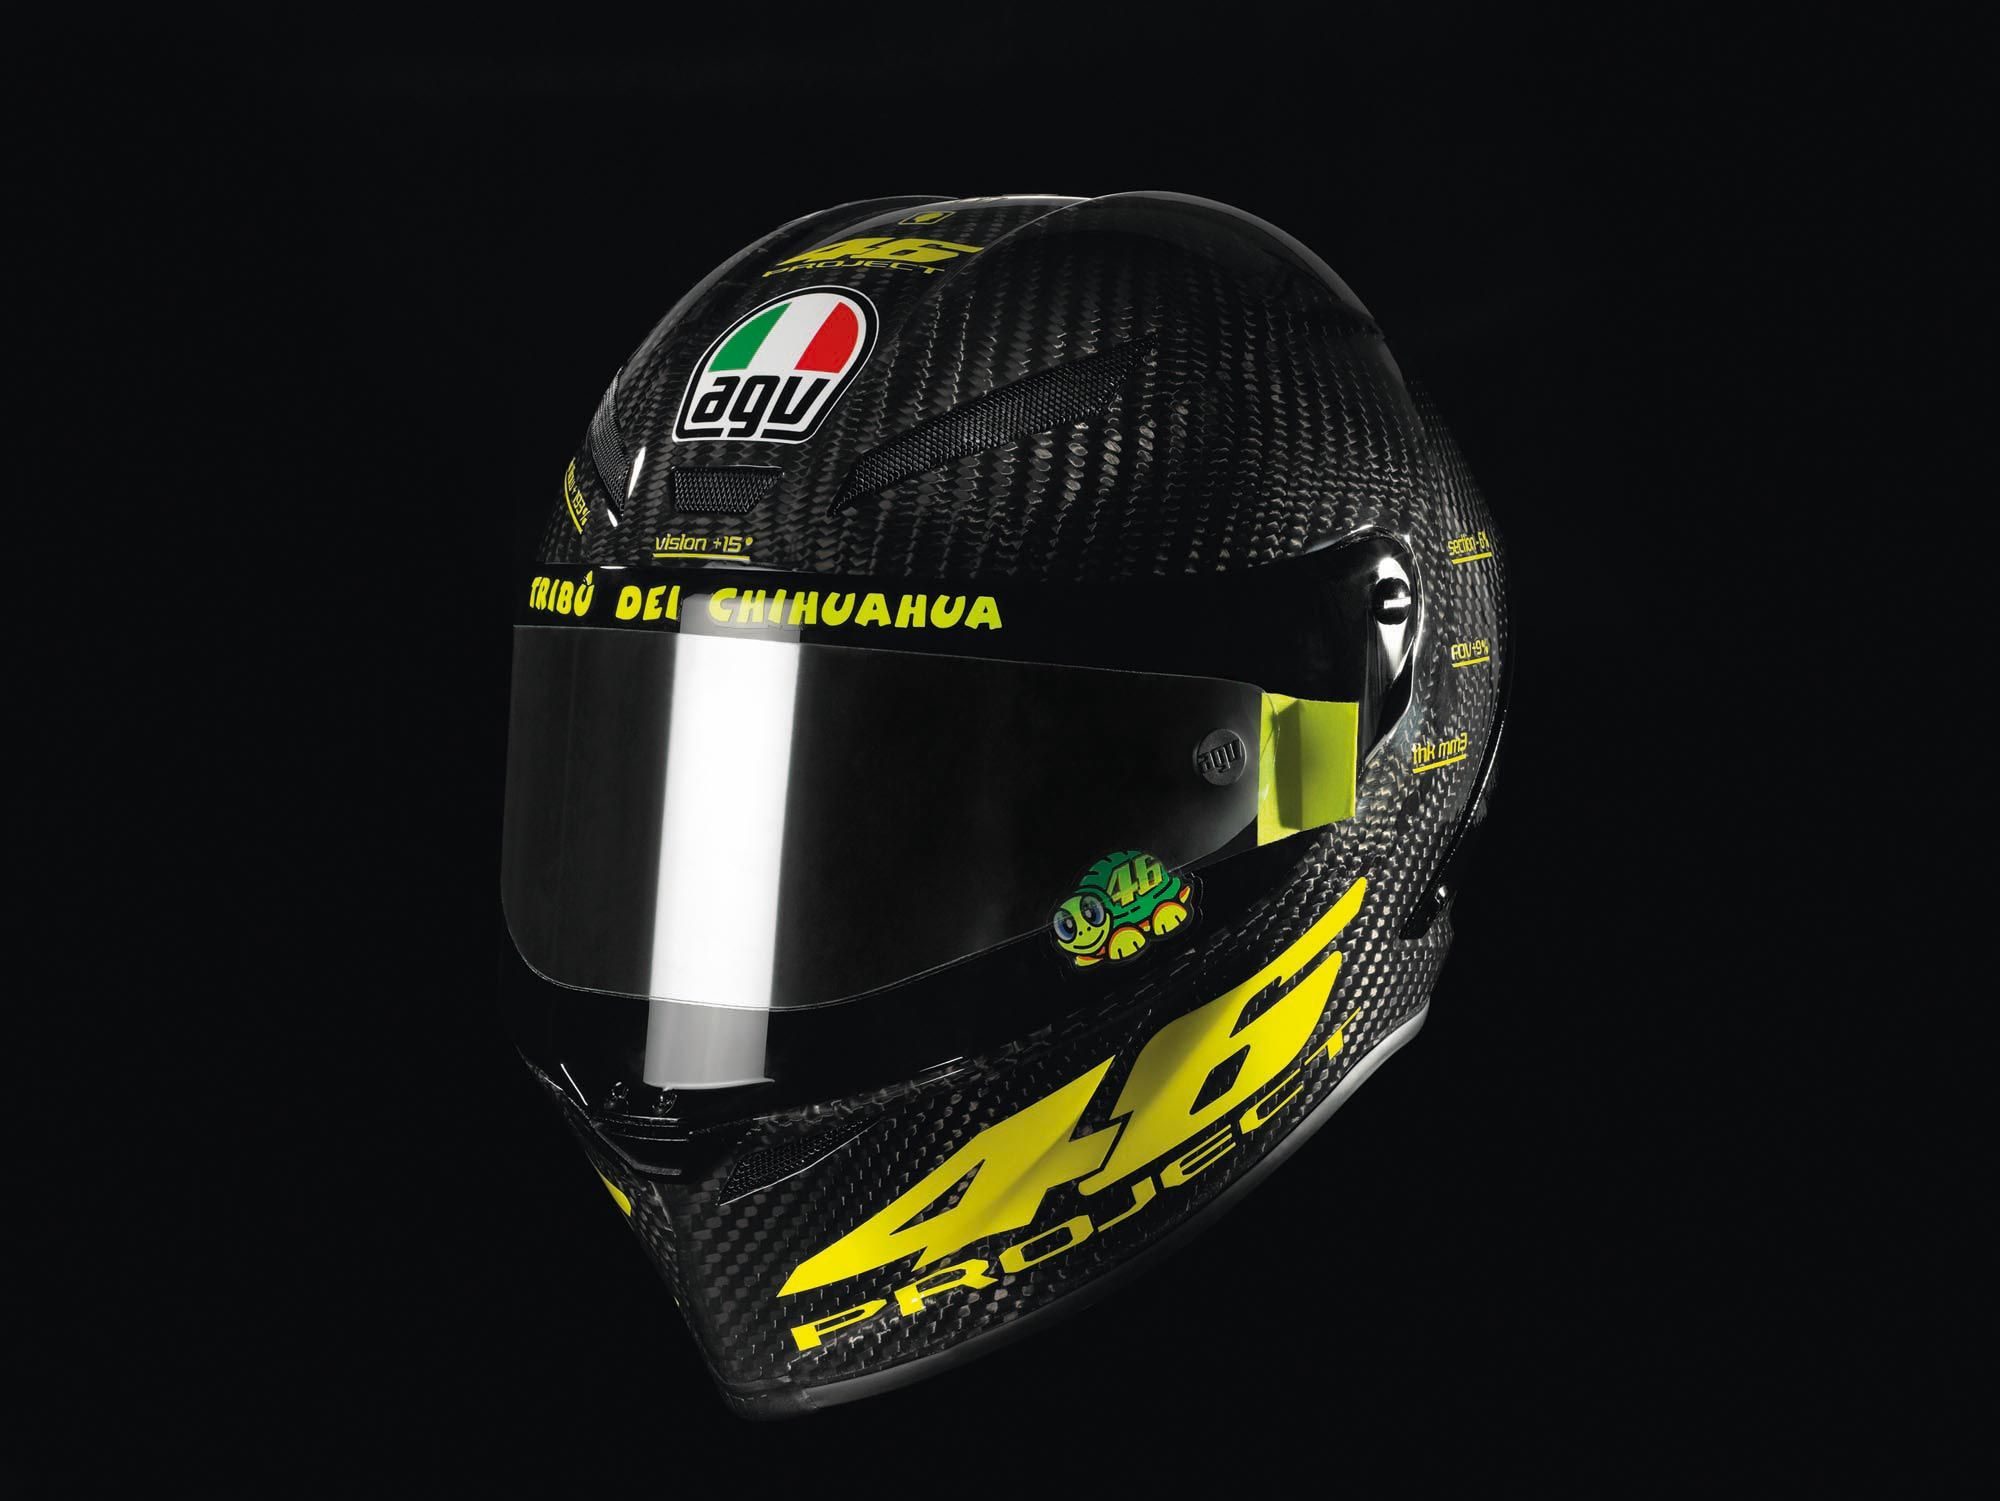 26 Pubg Helmets Wallpapers: Valentino Rossi PistaGP Helmet By AGV